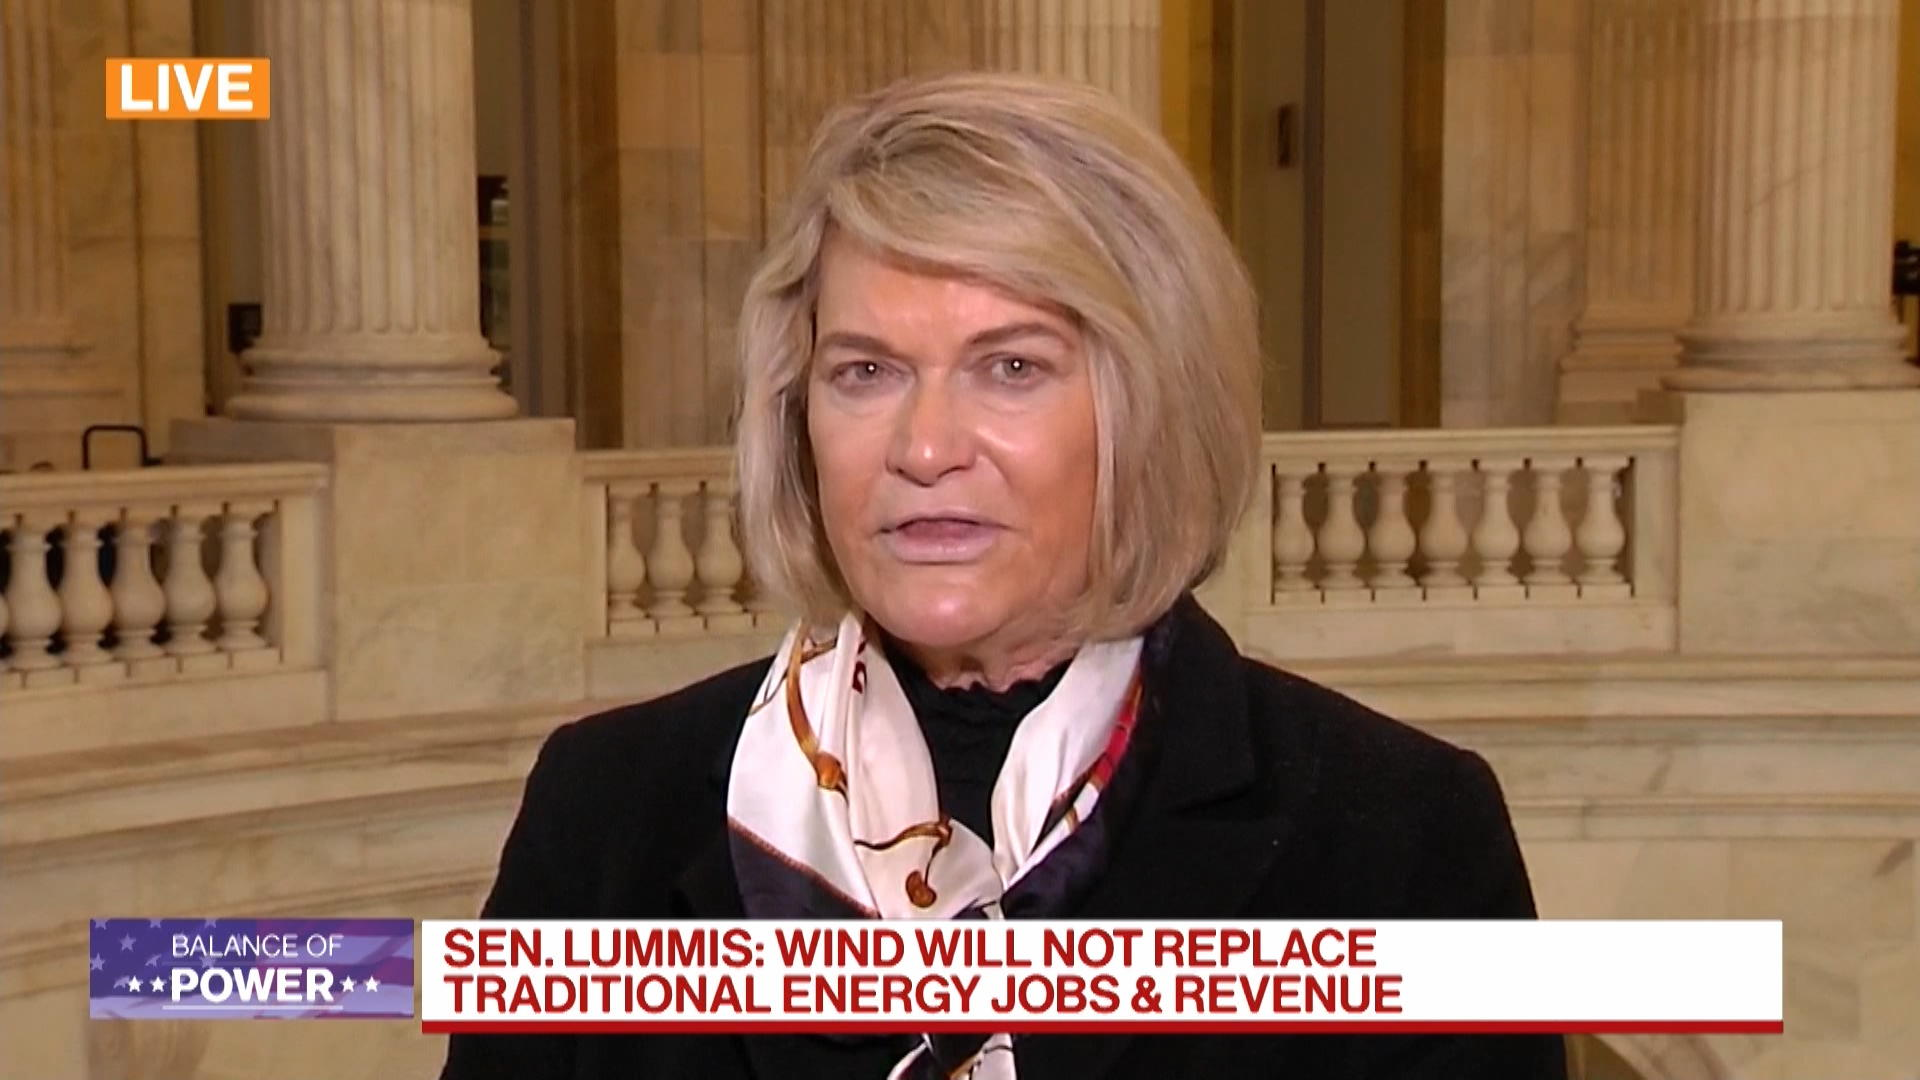 Sen. Lummis Says Wind Will Not Replace Traditional Energy Jobs, Revenue thumbnail